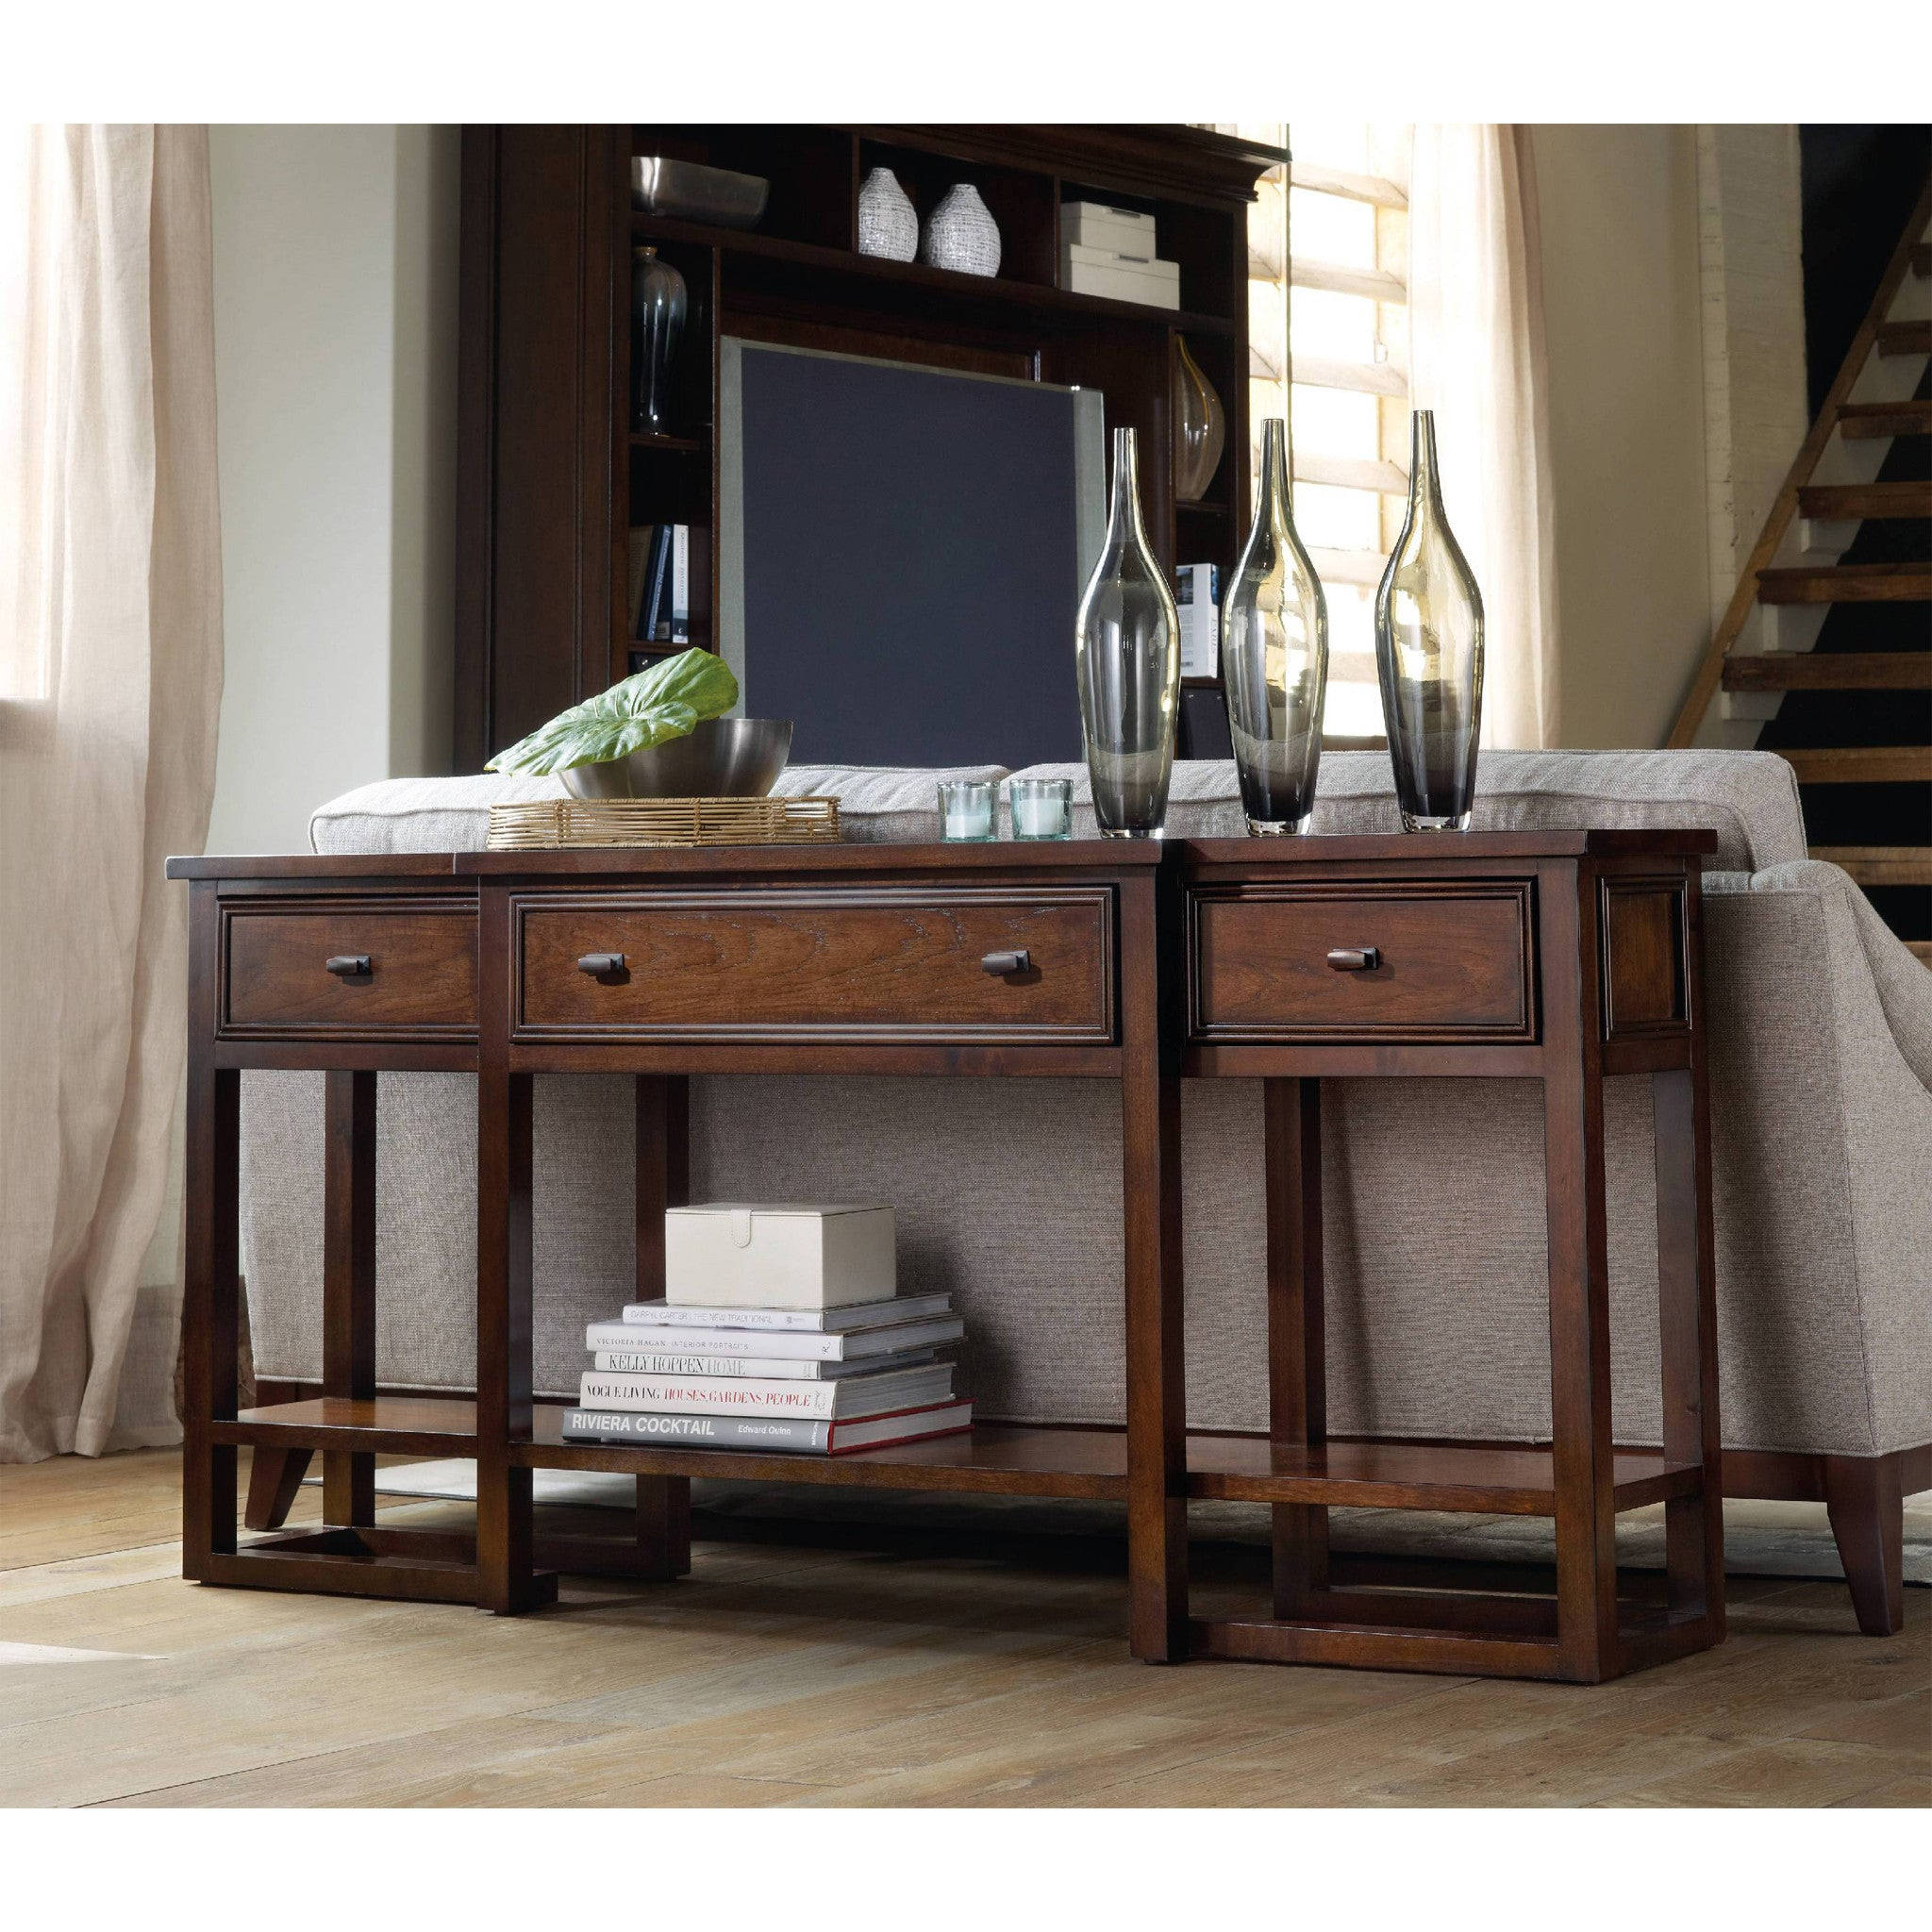 Living room furniture missoula mt tagged console table madison lorimer console table geotapseo Gallery